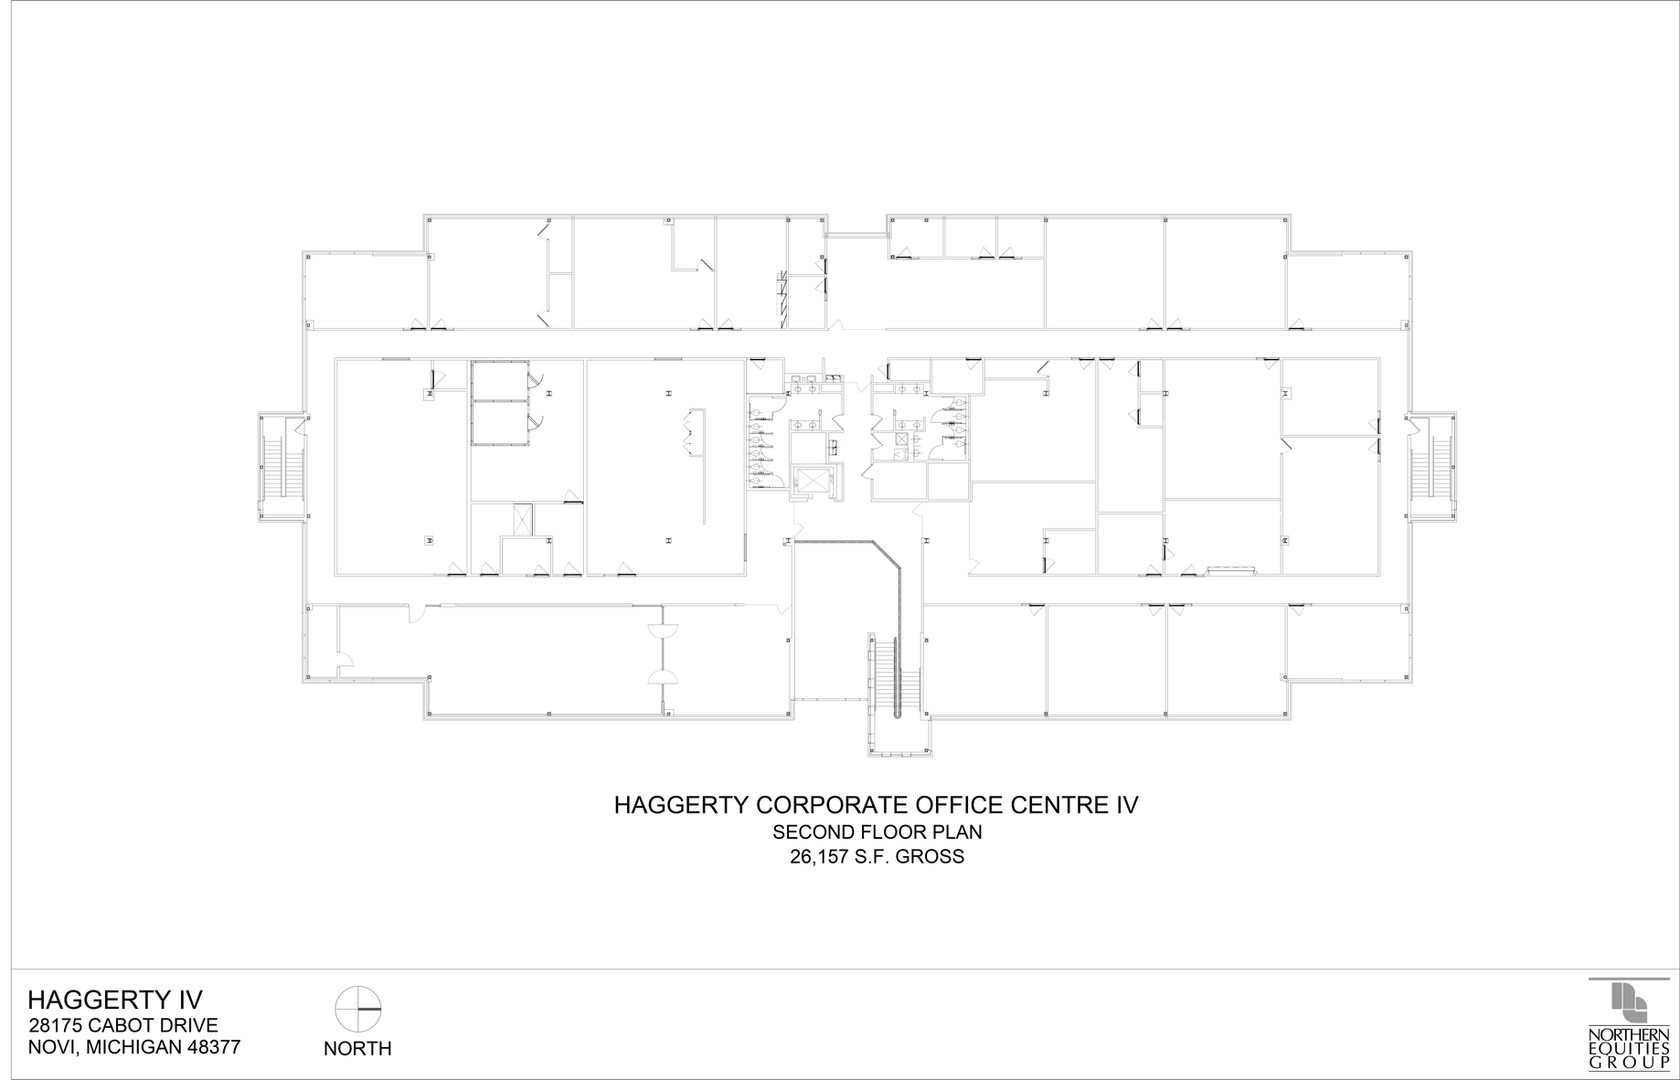 HCOC-IV---Second-Floor-Plan.jpg